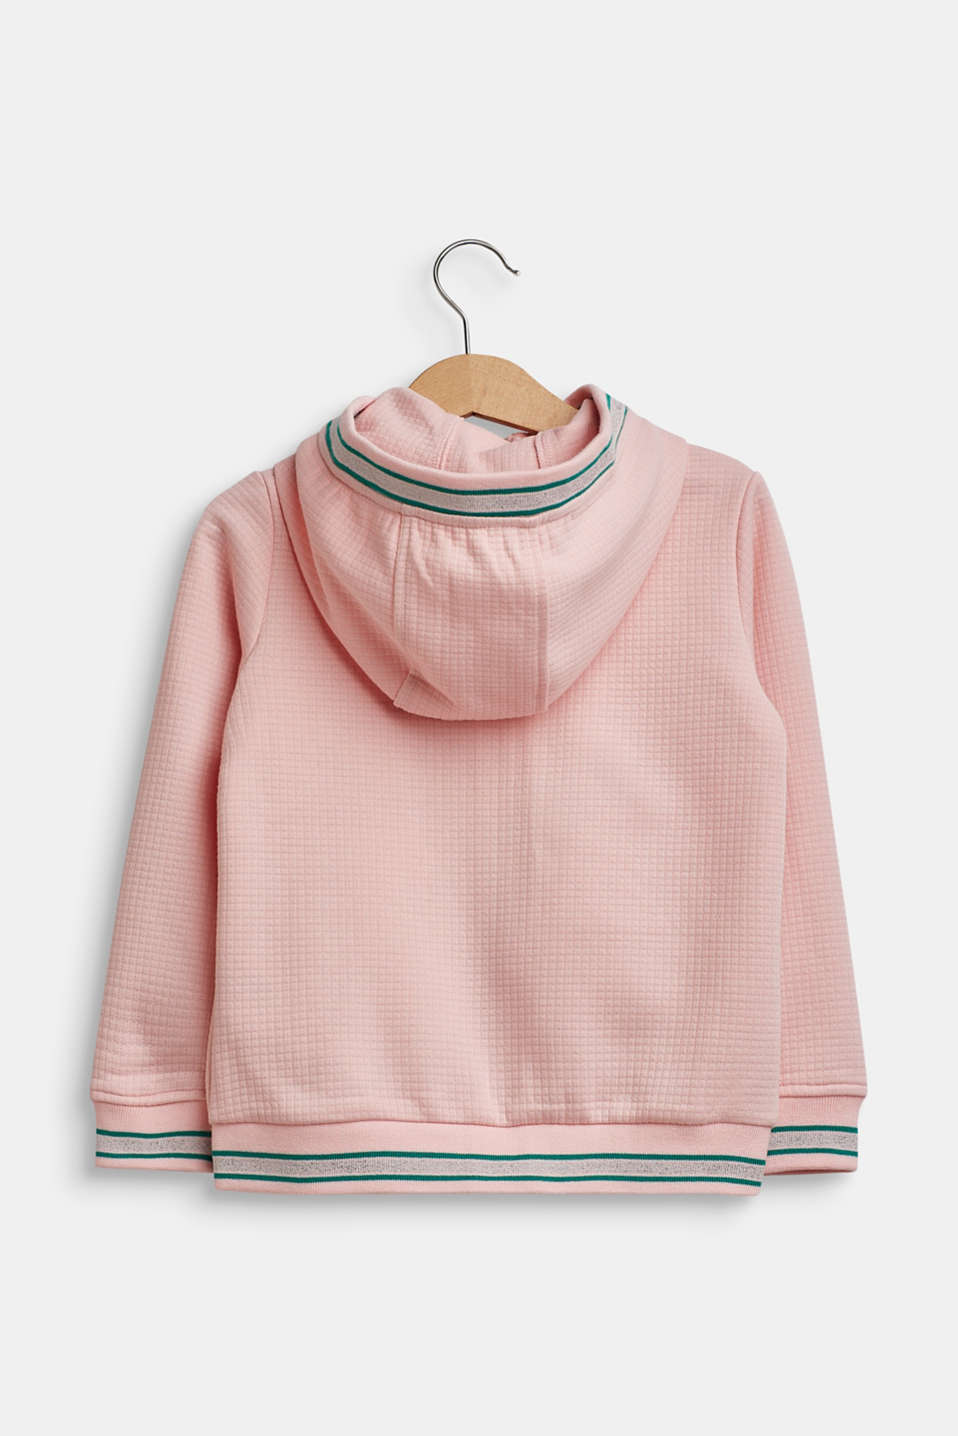 Sweatshirts cardigan, LCTINTED ROSE, detail image number 1